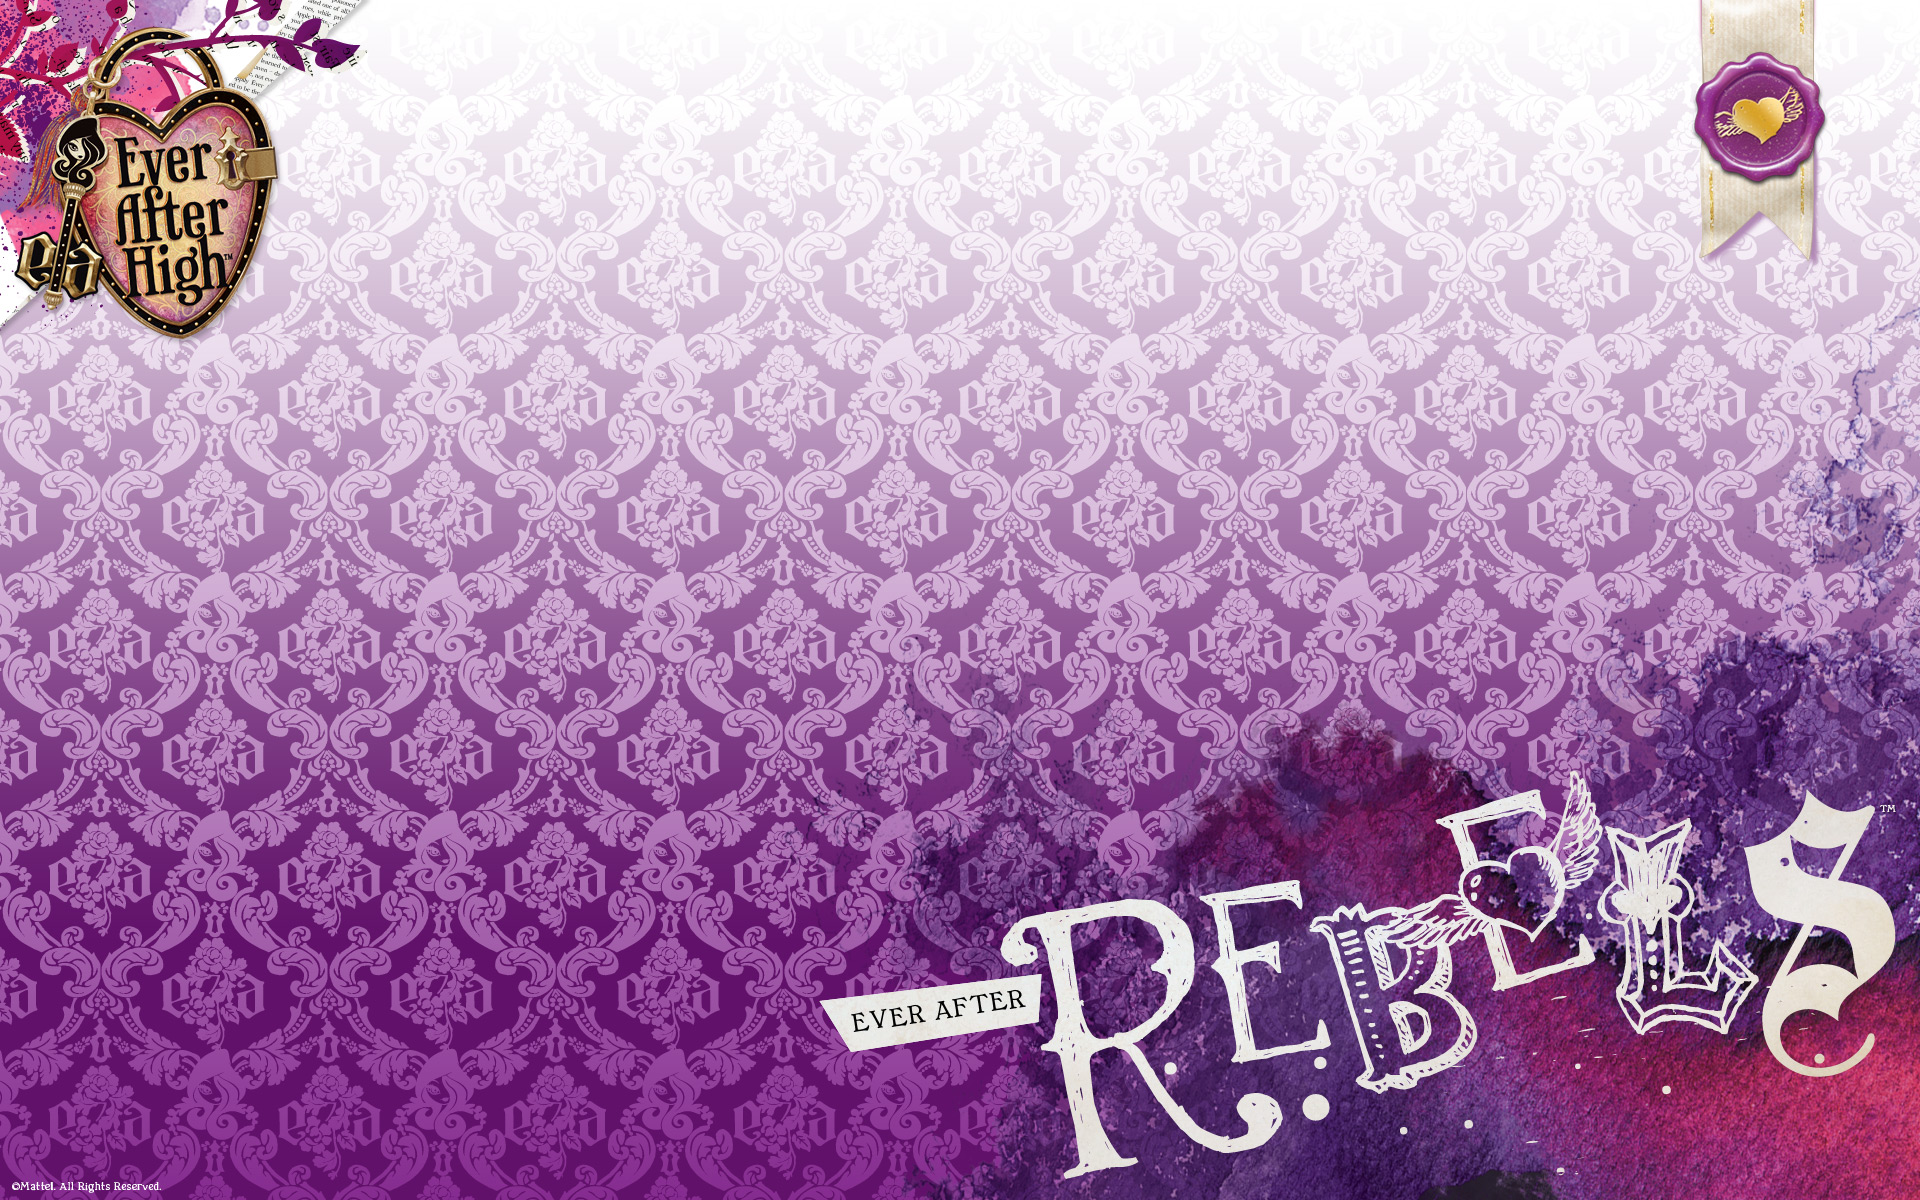 Ever After High Images Ever After High Rebels Wallpaper Hd Wallpaper